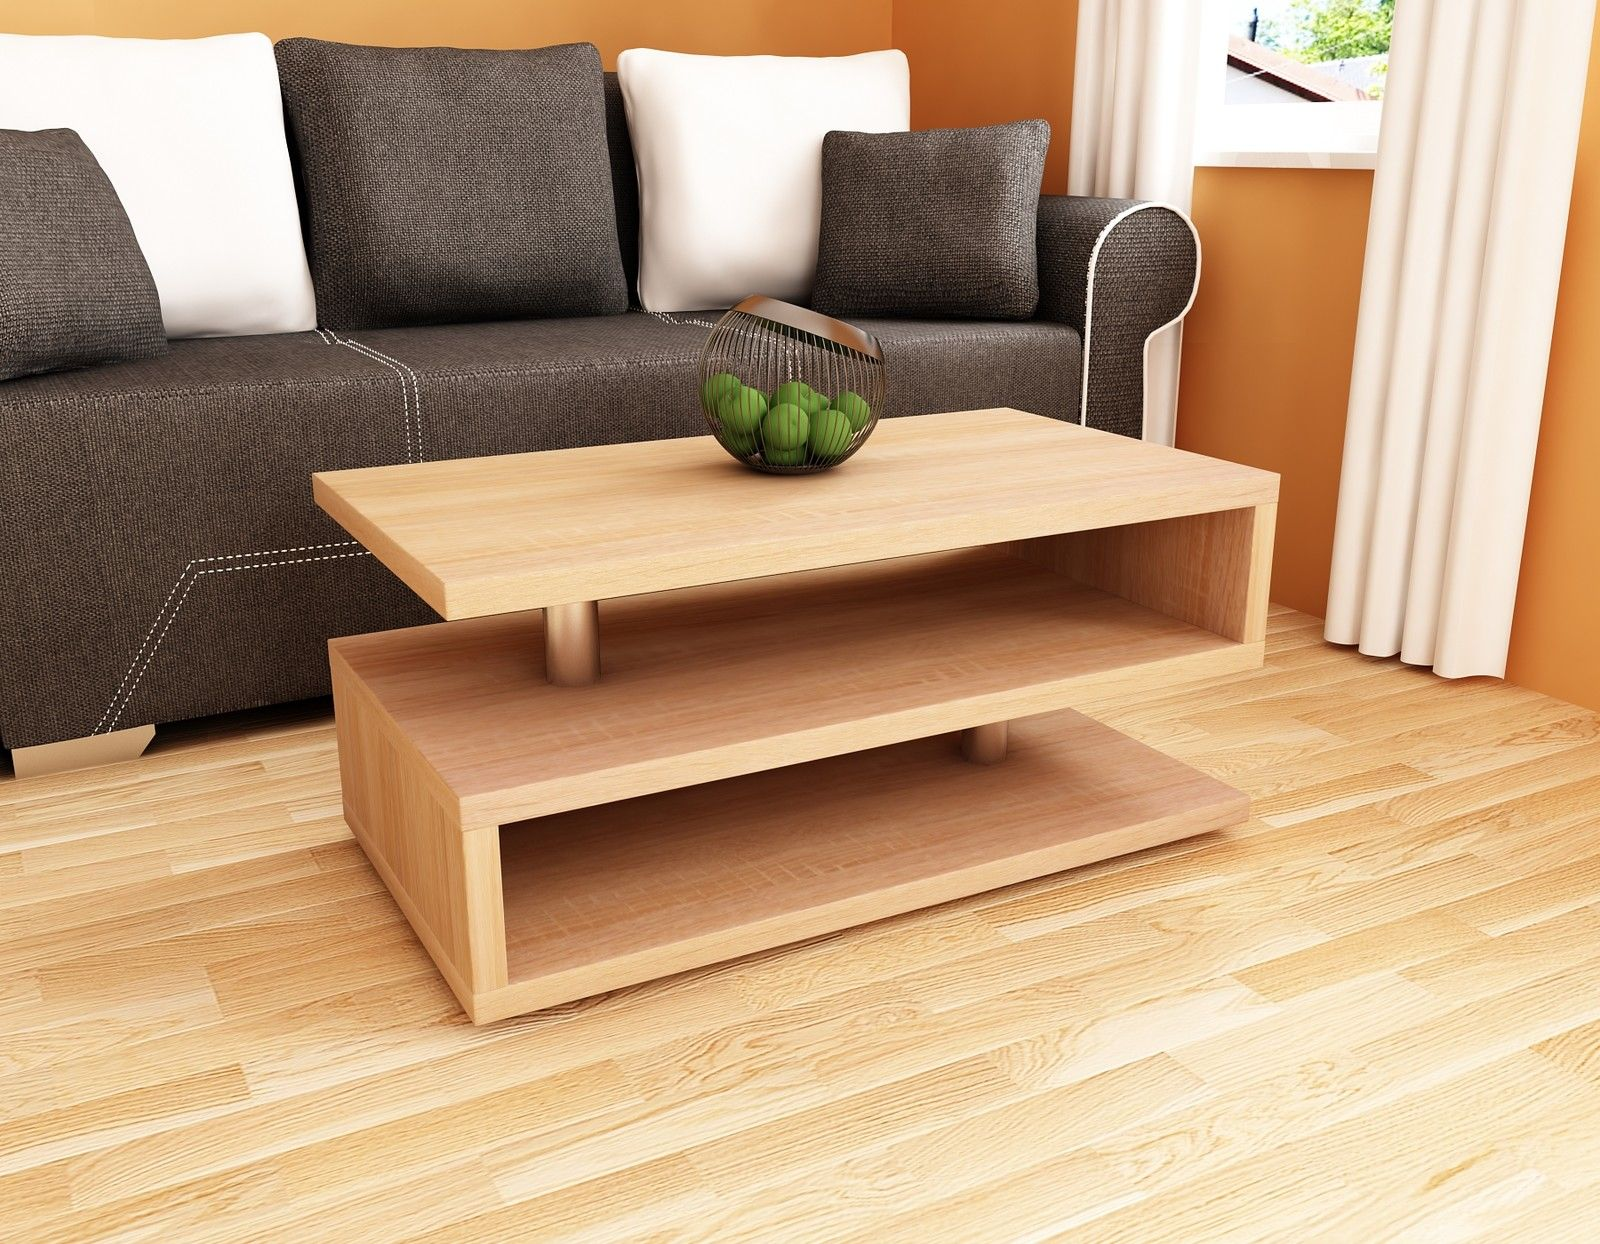 couchtisch modern 110cm wohnzimmertisch 100x55cm sofatisch tisch design holz kaufen bei madera. Black Bedroom Furniture Sets. Home Design Ideas